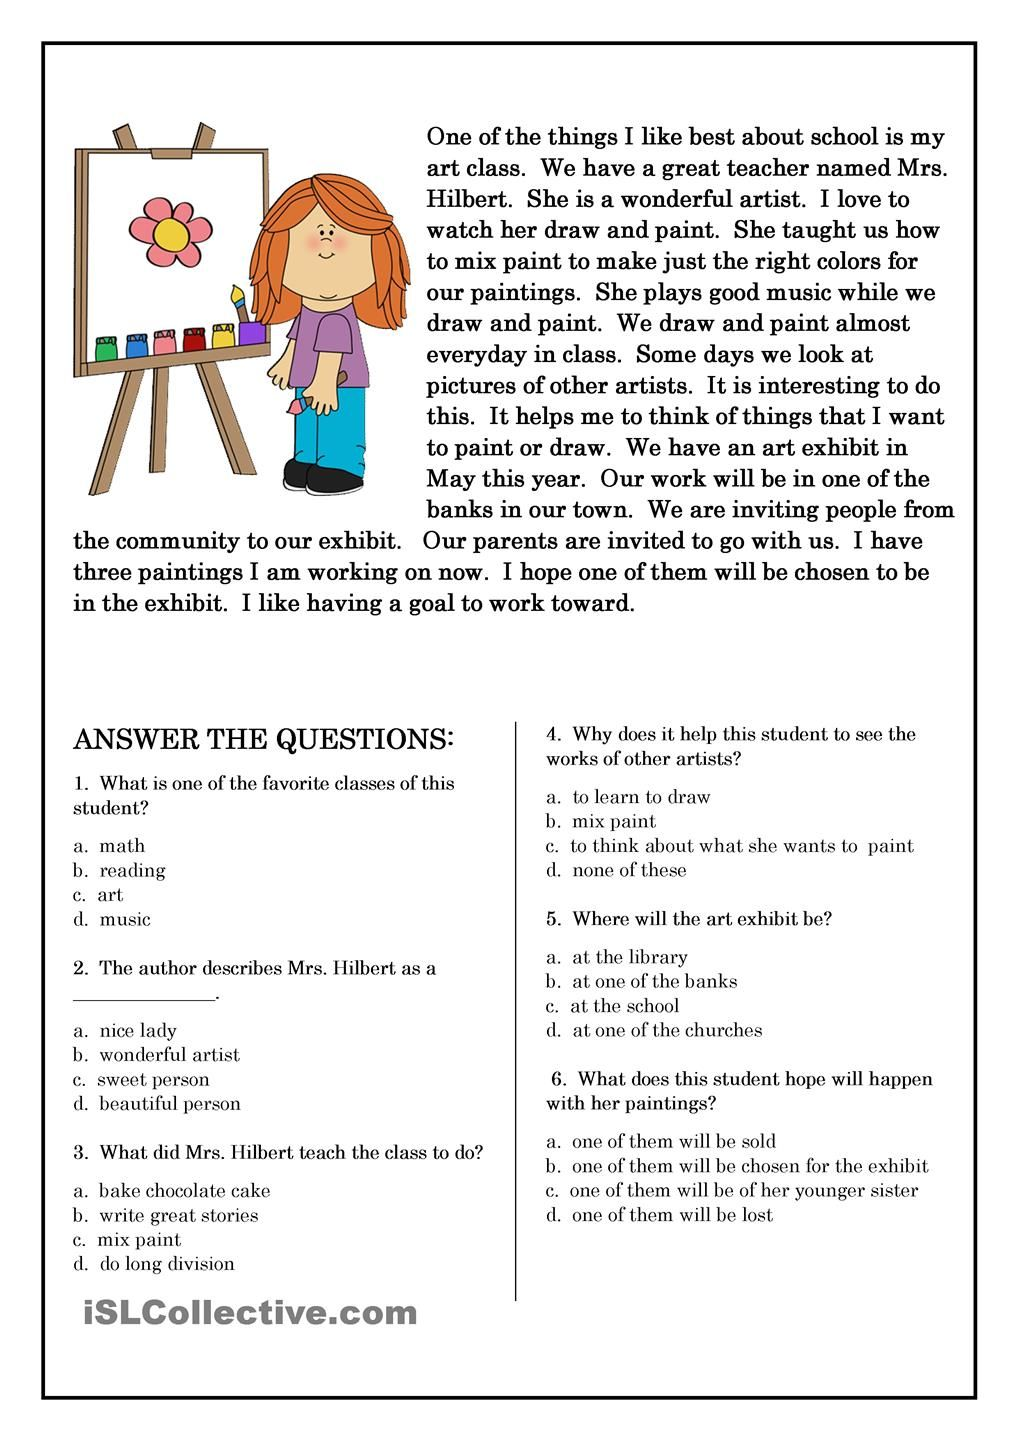 Worksheet Reading And Comprehension Exercises 1000 images about reading comprehension on pinterest simple sentences grade 1 and stories